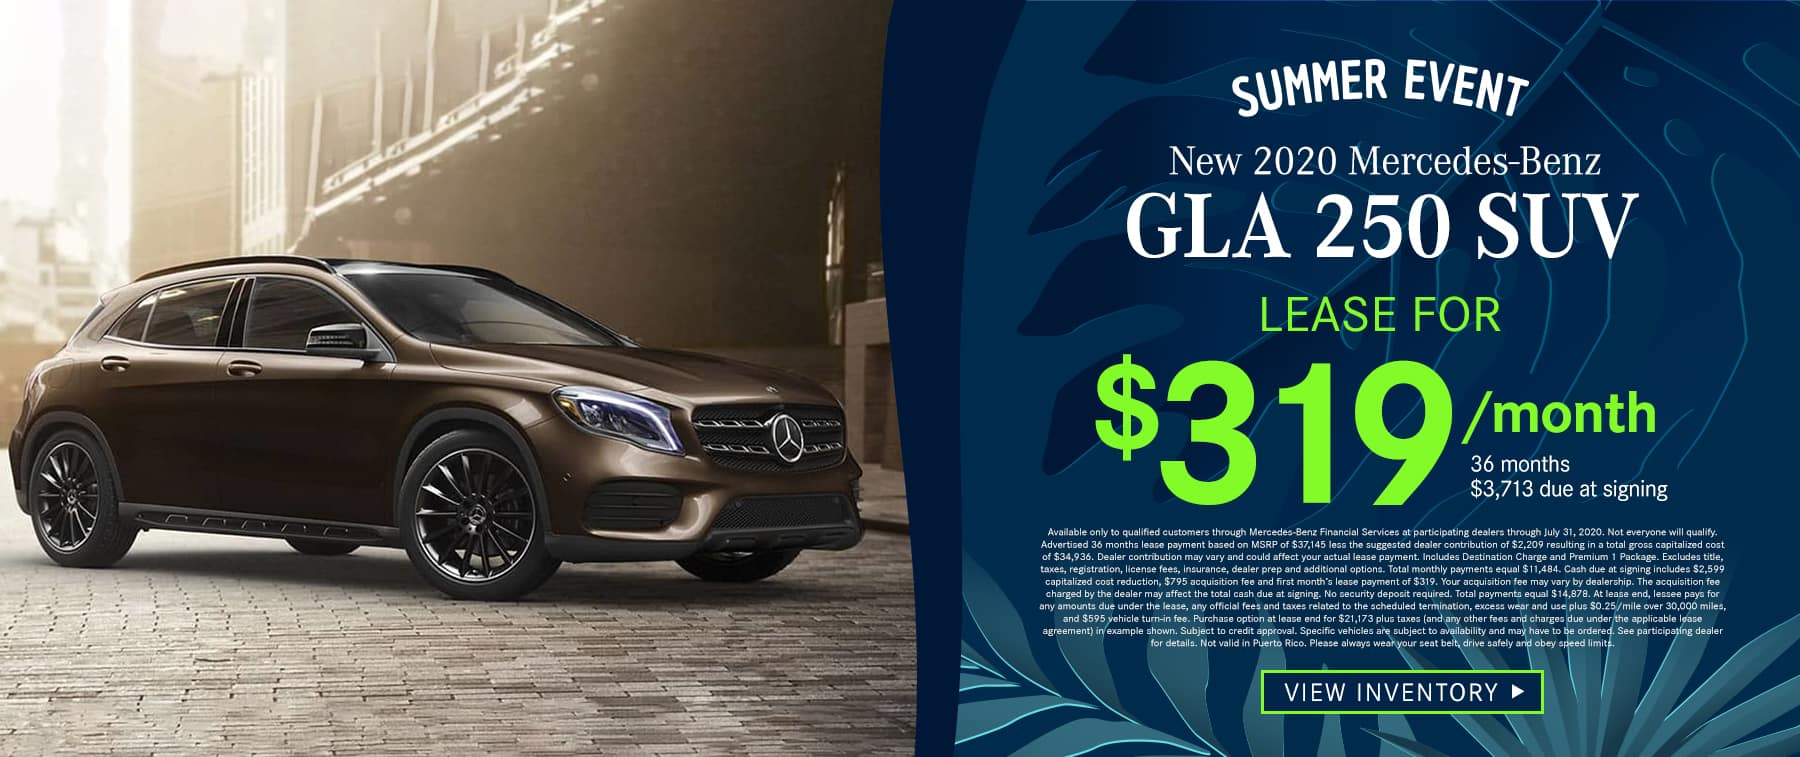 2020 GLA 250 SUV Lease as low as $319 Per Month 36 Months/10k Miles $3,713 Due at signing